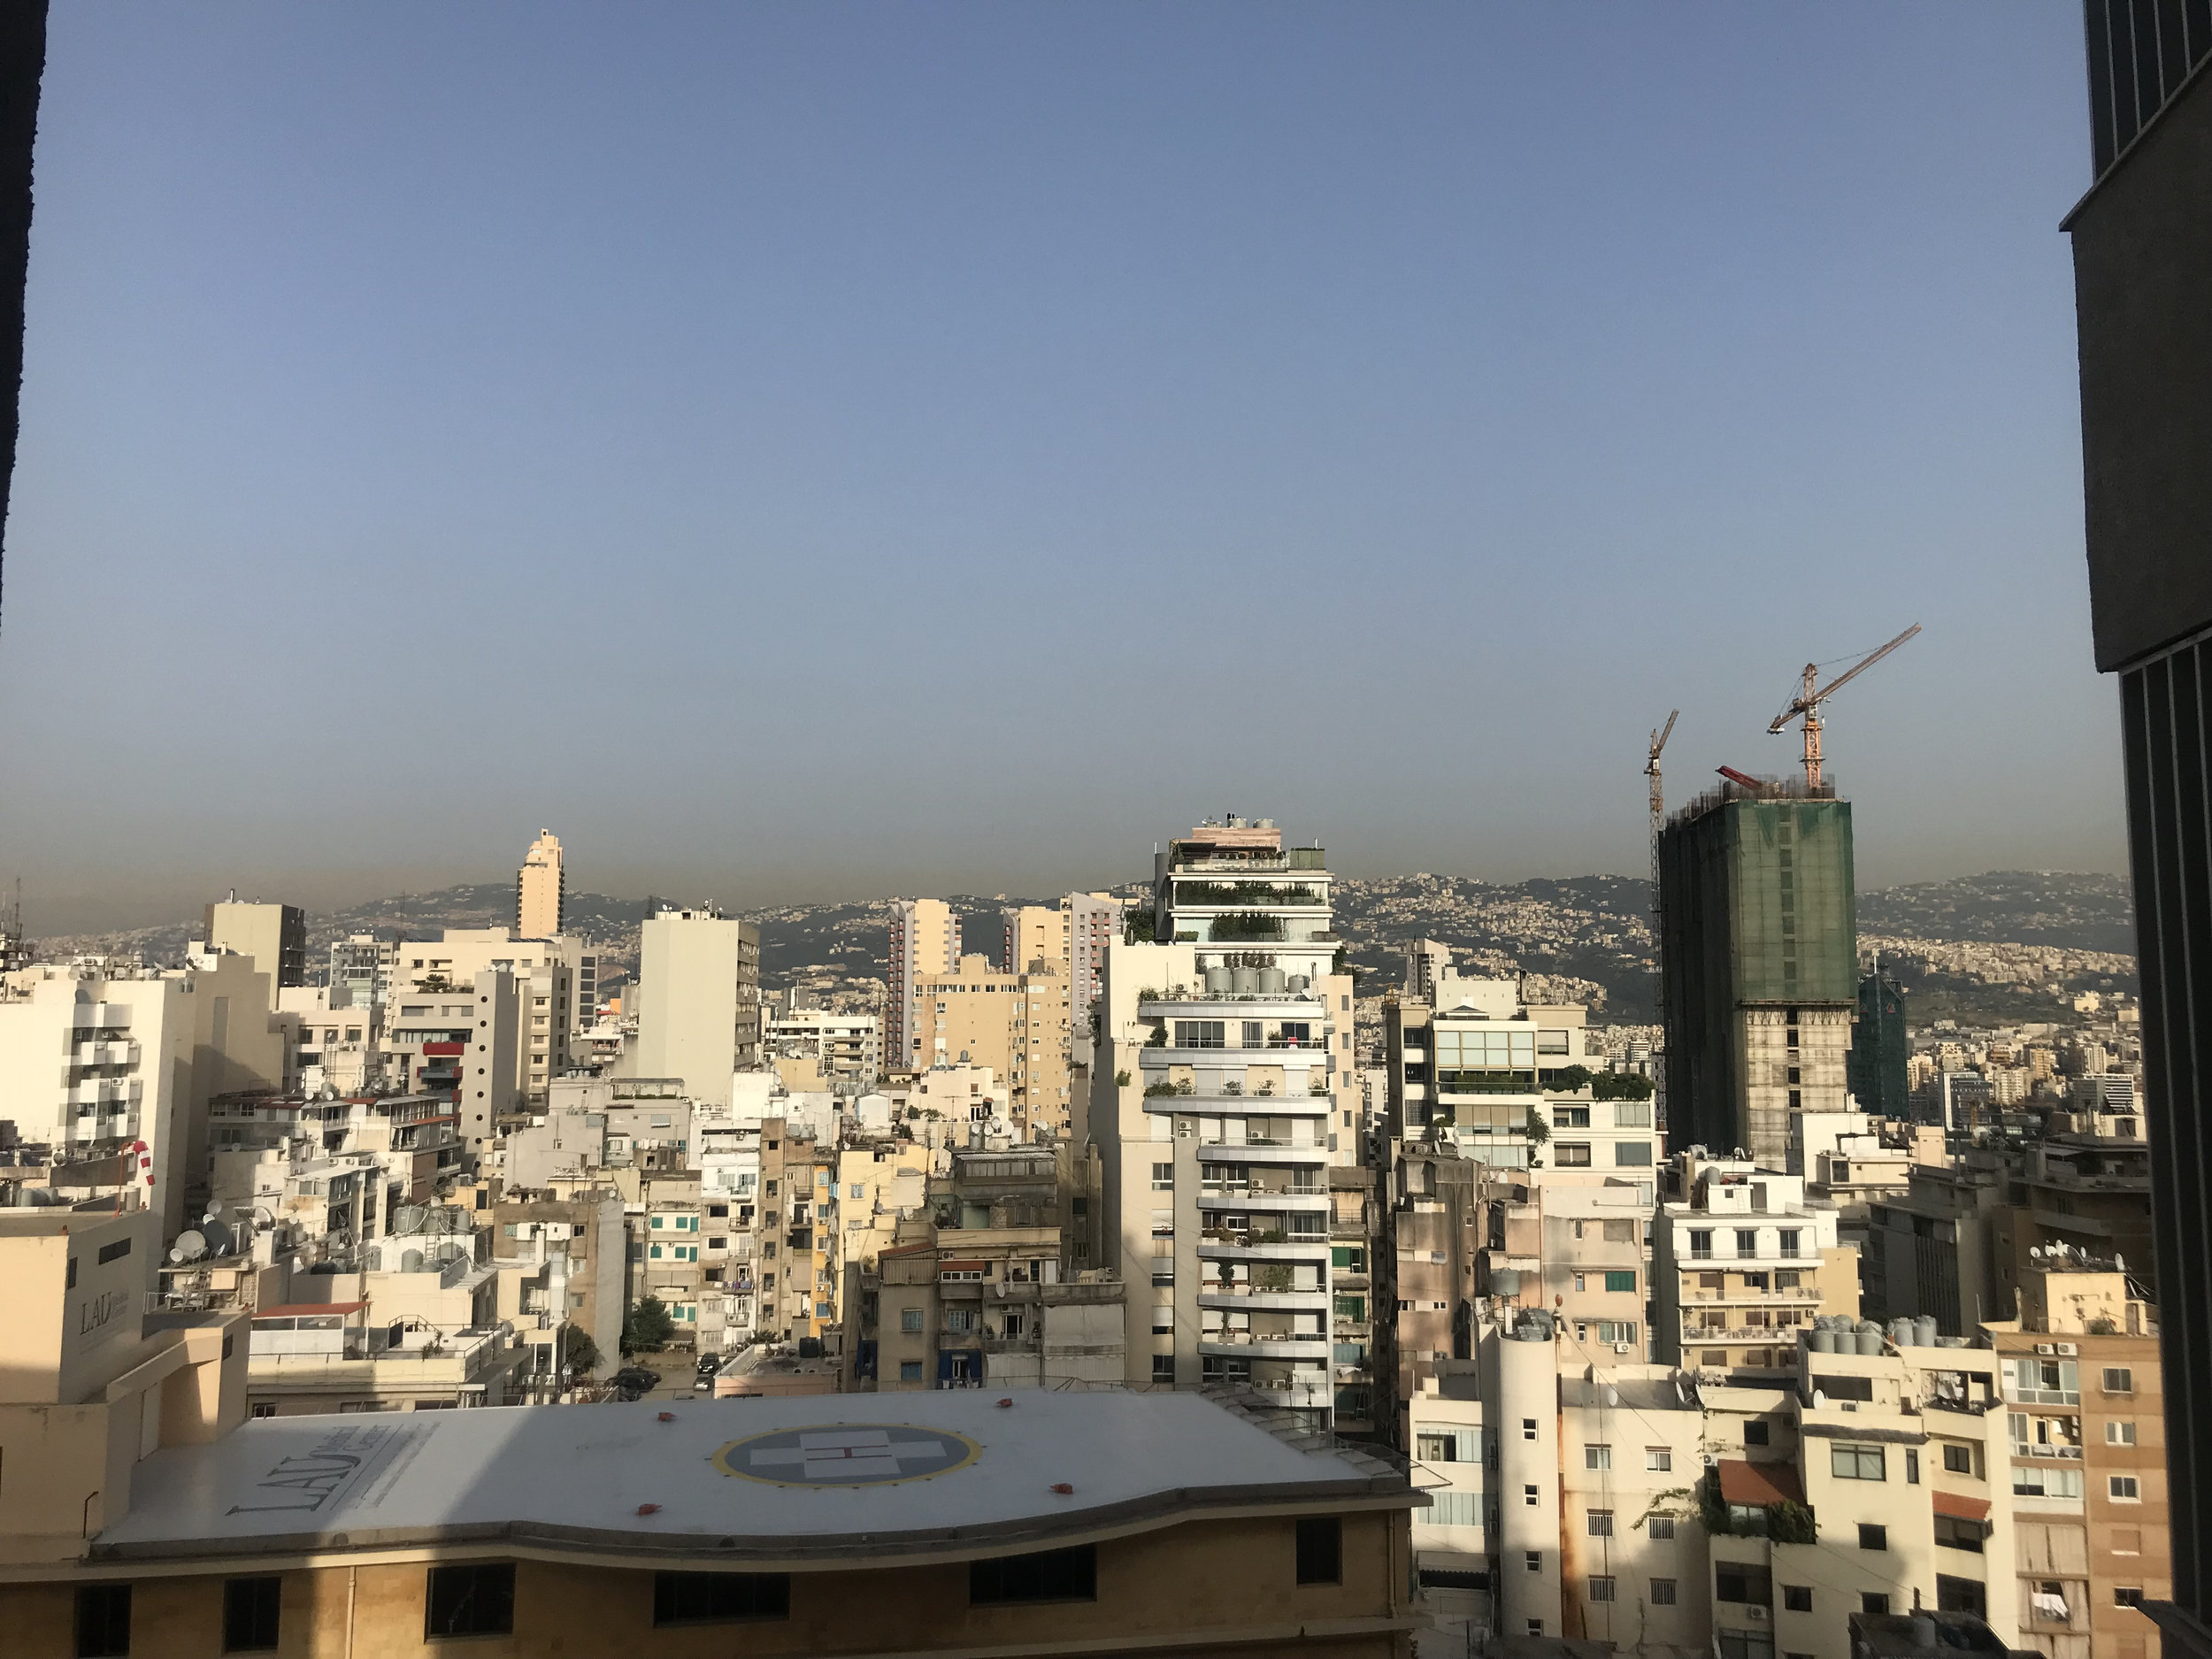 View from my friend's apartment in Beirut